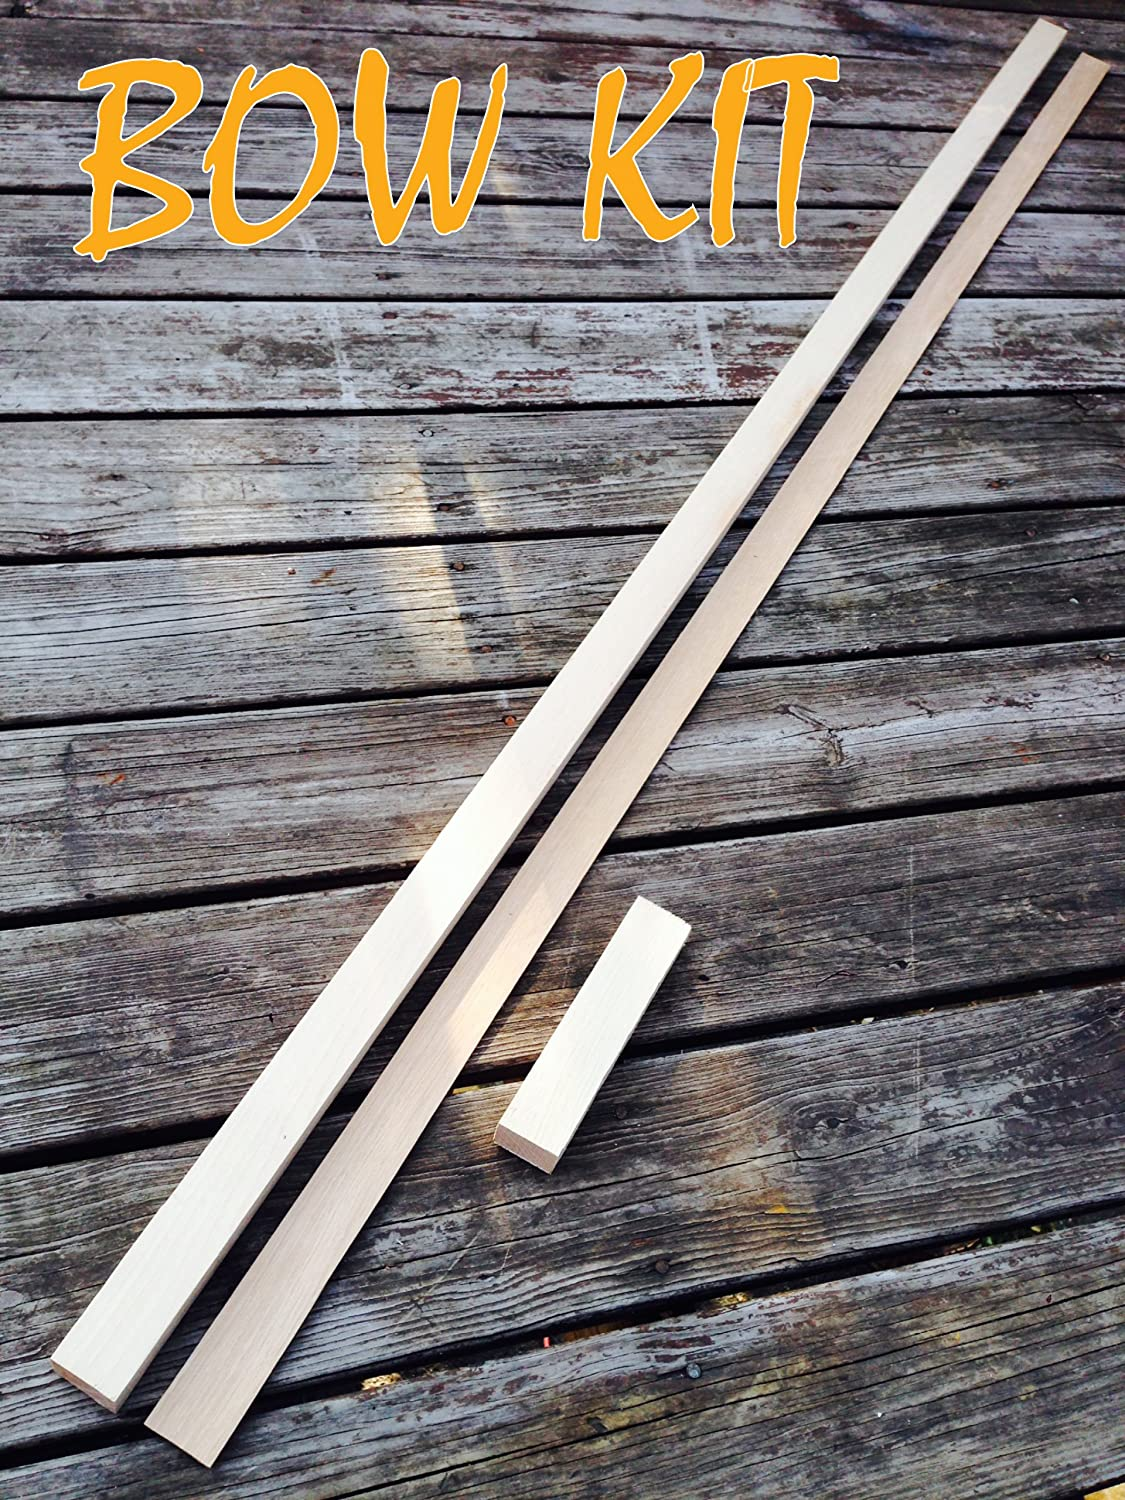 Amazon hickory bow kit premium grain perfect for hickory amazon hickory bow kit premium grain perfect for hickory bows custom wood archery other products sports outdoors solutioingenieria Image collections